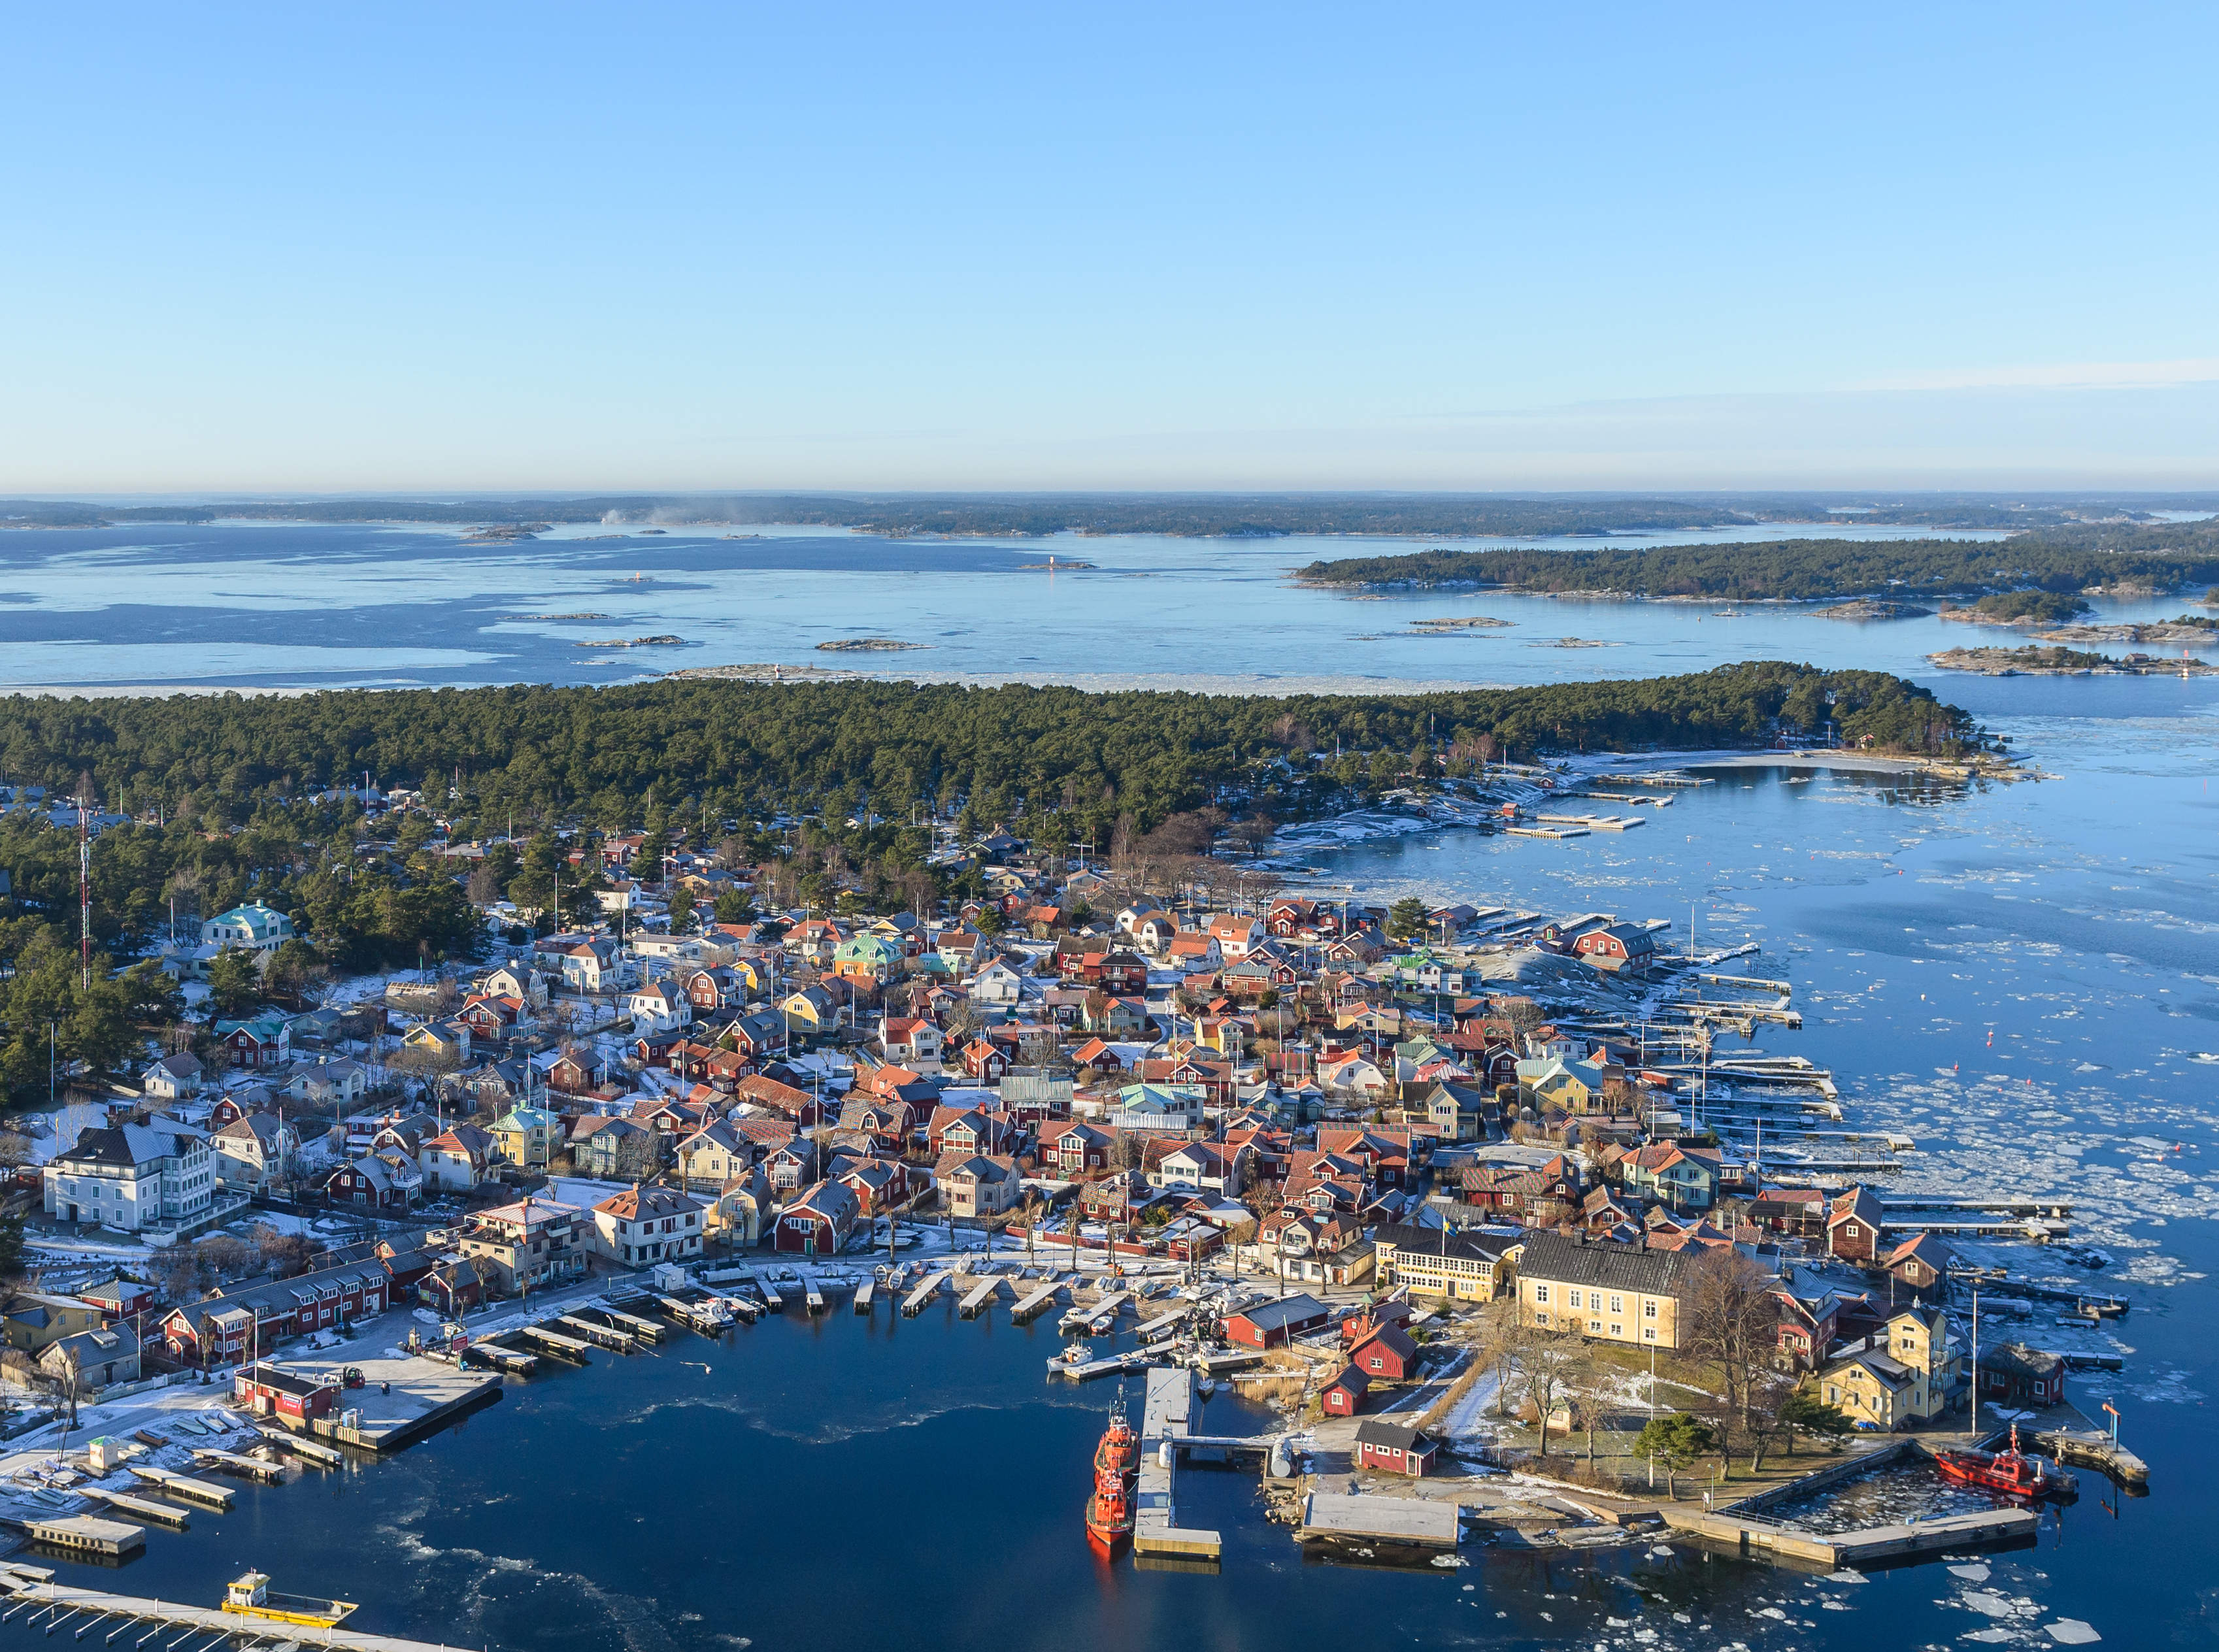 Baltic Sea provides clean drinking water for Swedish holiday island during summer drought using new tech